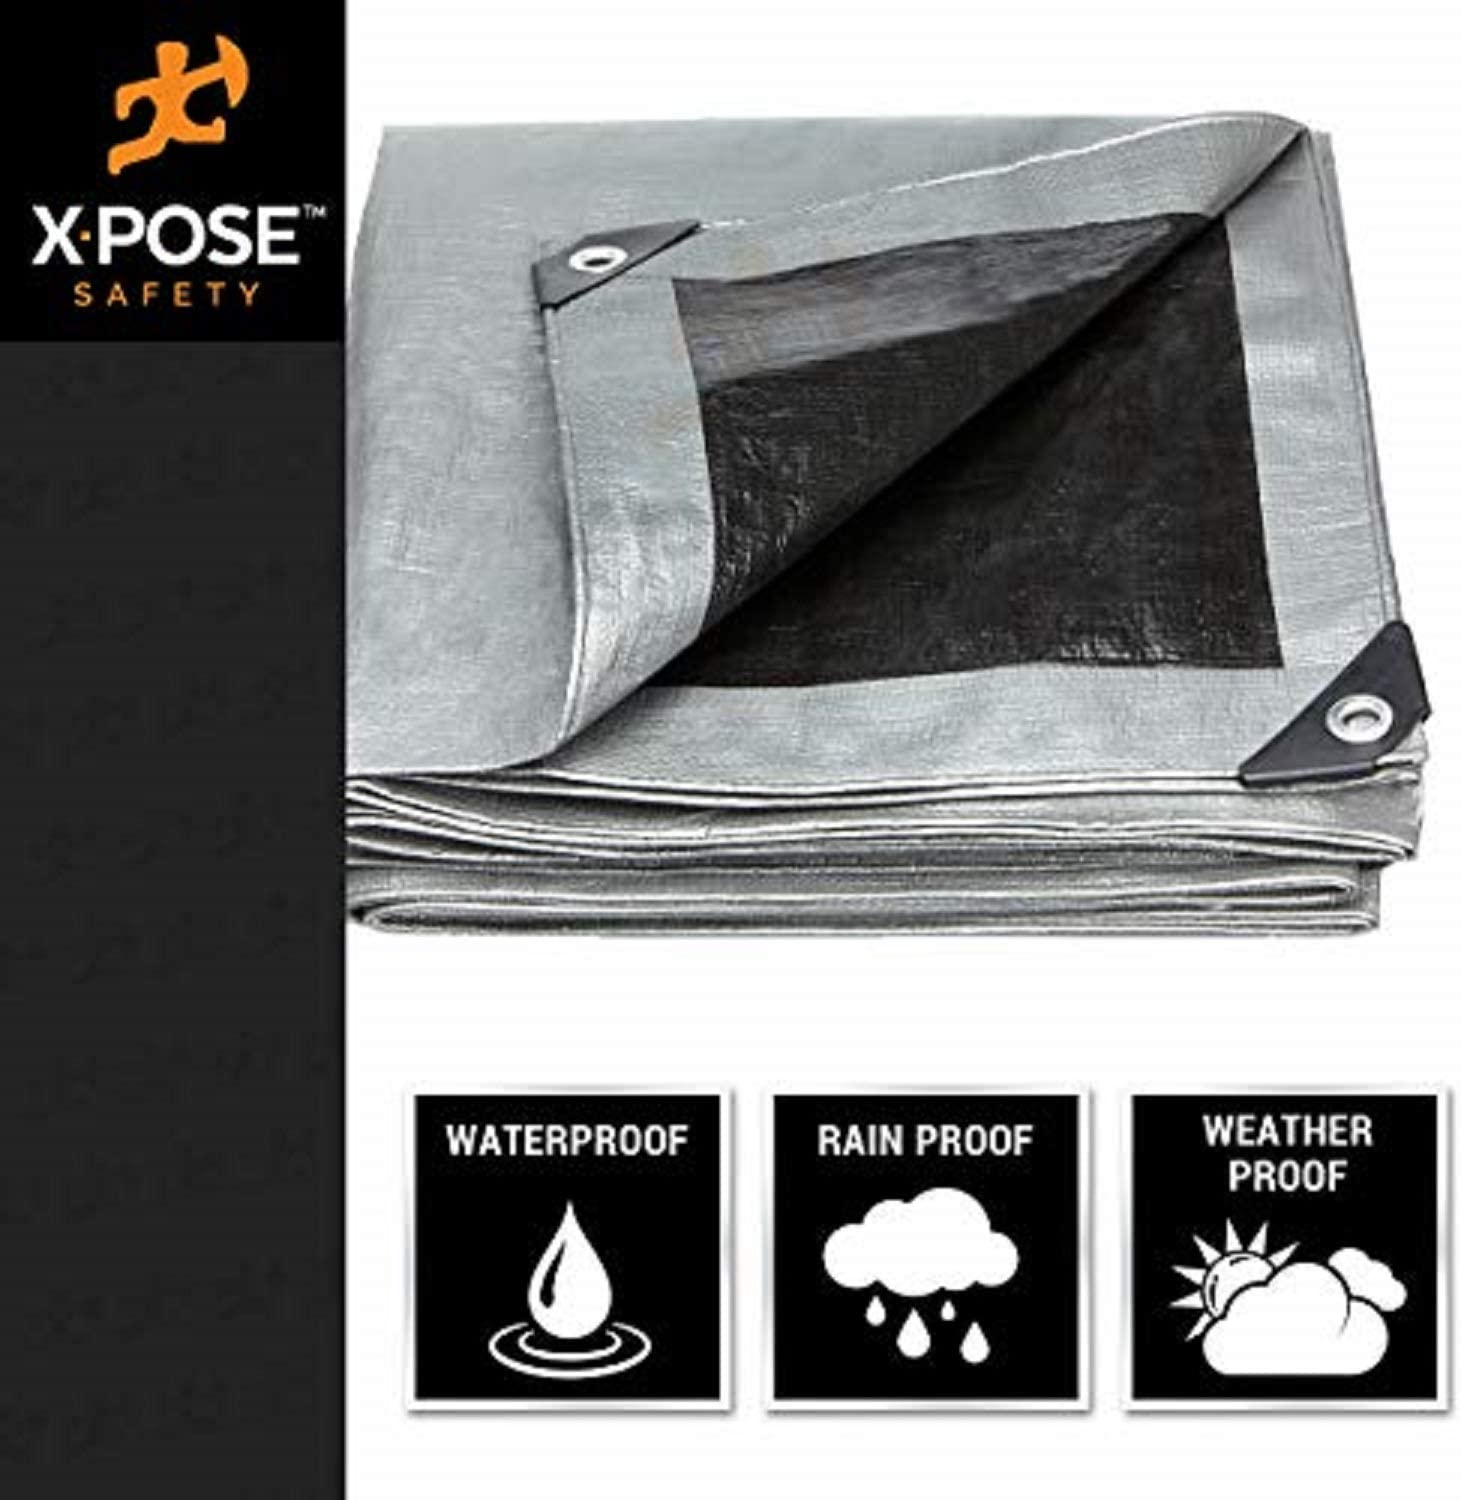 Reversible Silver and Black Laminated Coating Rustproof Grommets by Xpose Safety 30 x 40-10 Mil Thick Waterproof UV Blocking Protective Cover Heavy Duty Poly Tarp